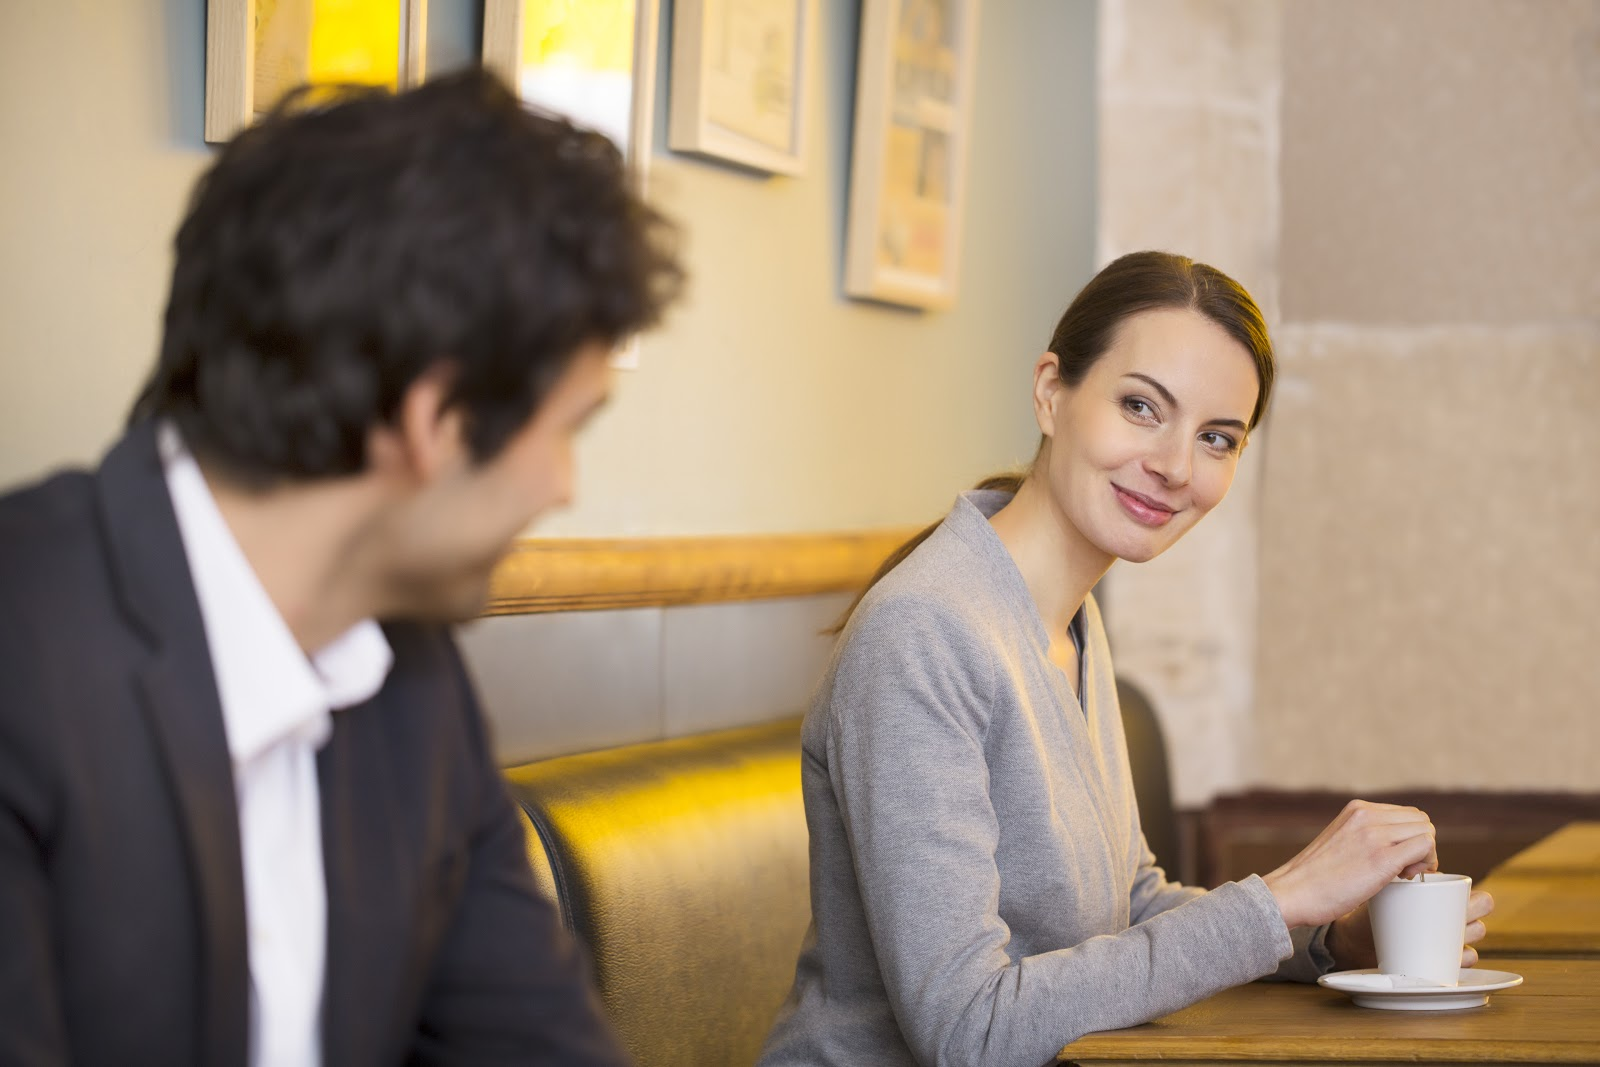 Woman and man smiling at each other in a restuarant